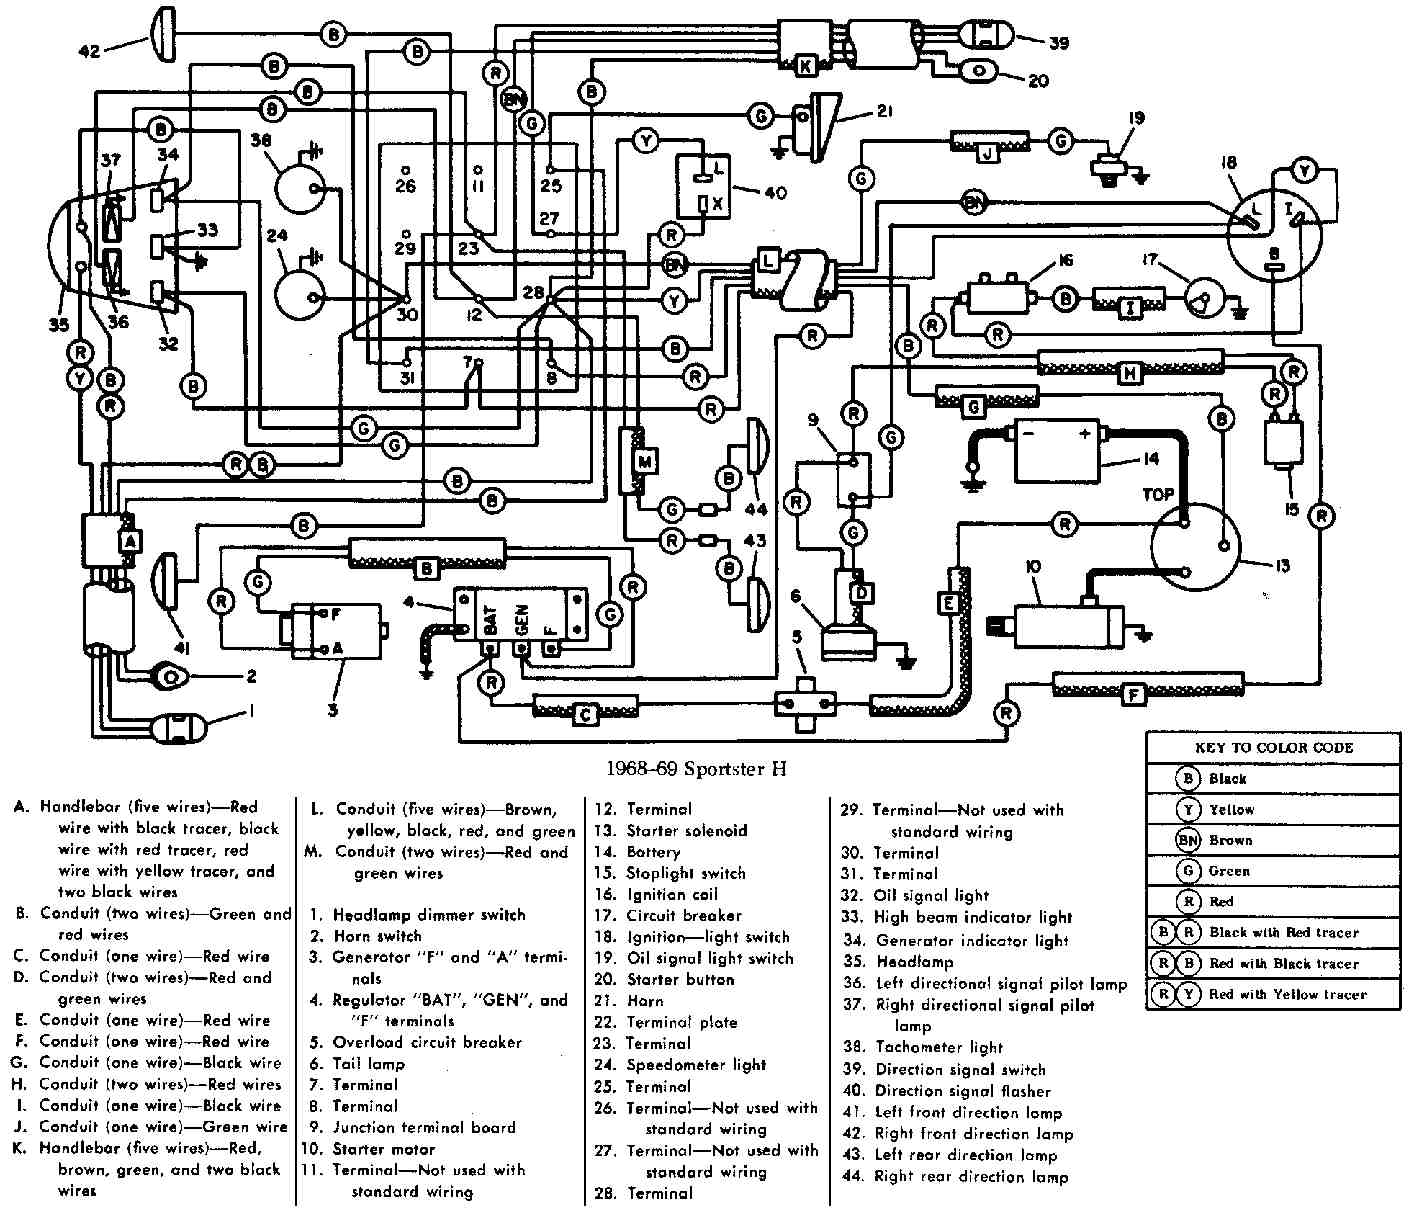 97 Harley Sportster Engine Diagram furthermore 92 Harley Davidson Flstc Wiring Diagram additionally 1959 Harley Davidson Wiring Diagram besides Harley Davidson Sportster 1968 1969 moreover Harley Sportster Carburetor. on on an 883 sportster chopper wiring